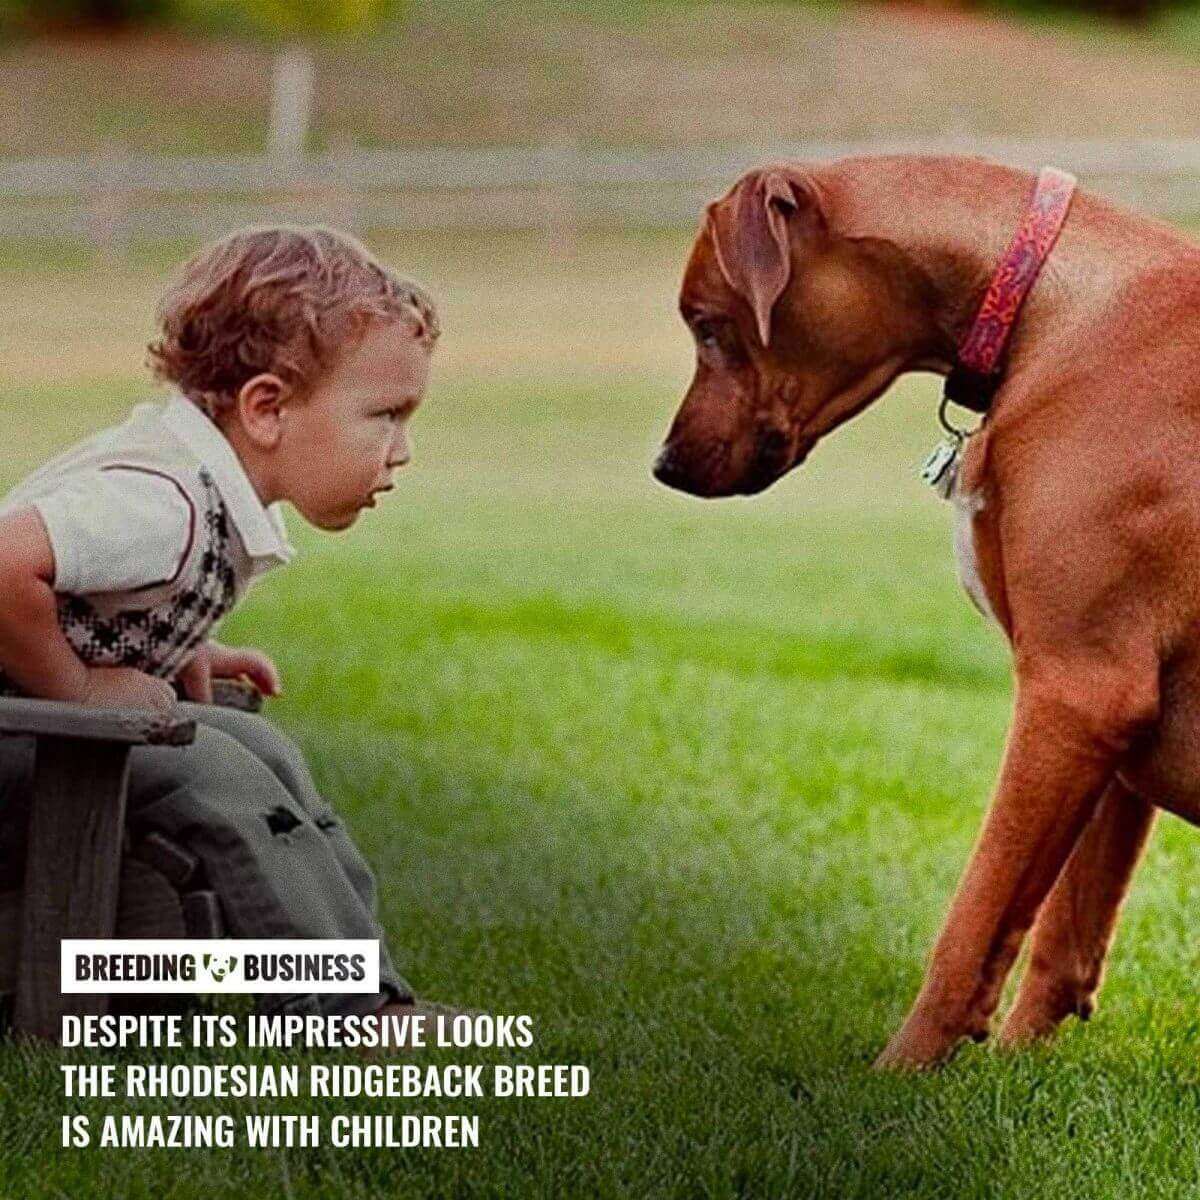 rhodesian ridgeback with children